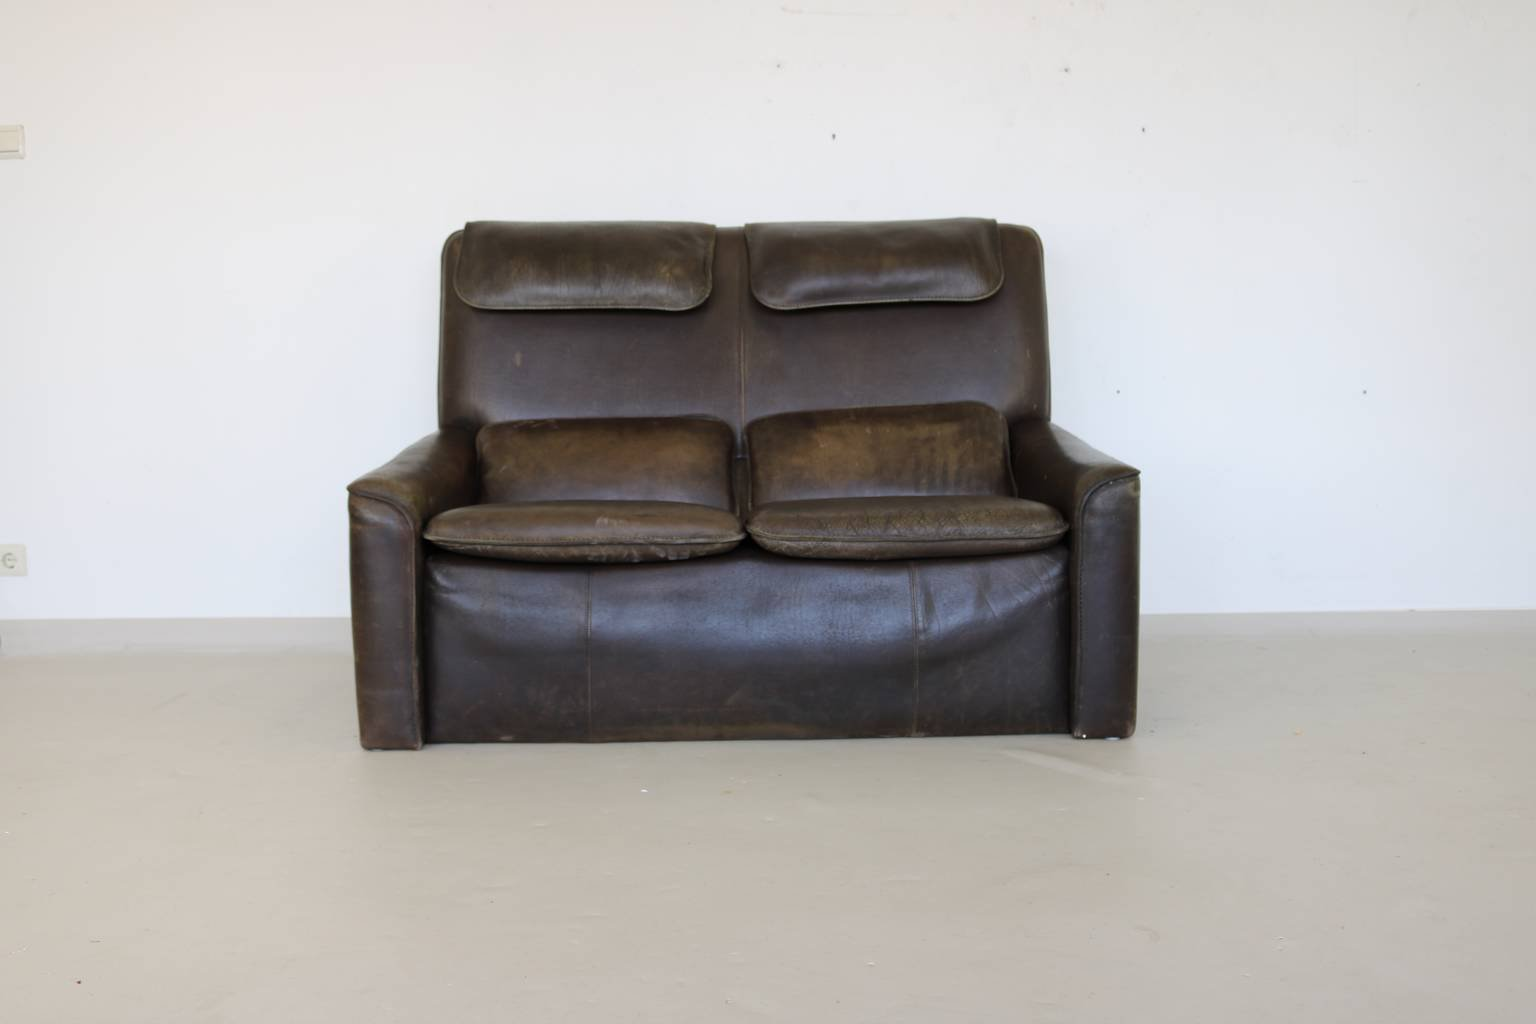 Canape Cuir Marron 2 Places Canapé Marron En Cuir 2 Places 1970s En Vente Sur Pamono